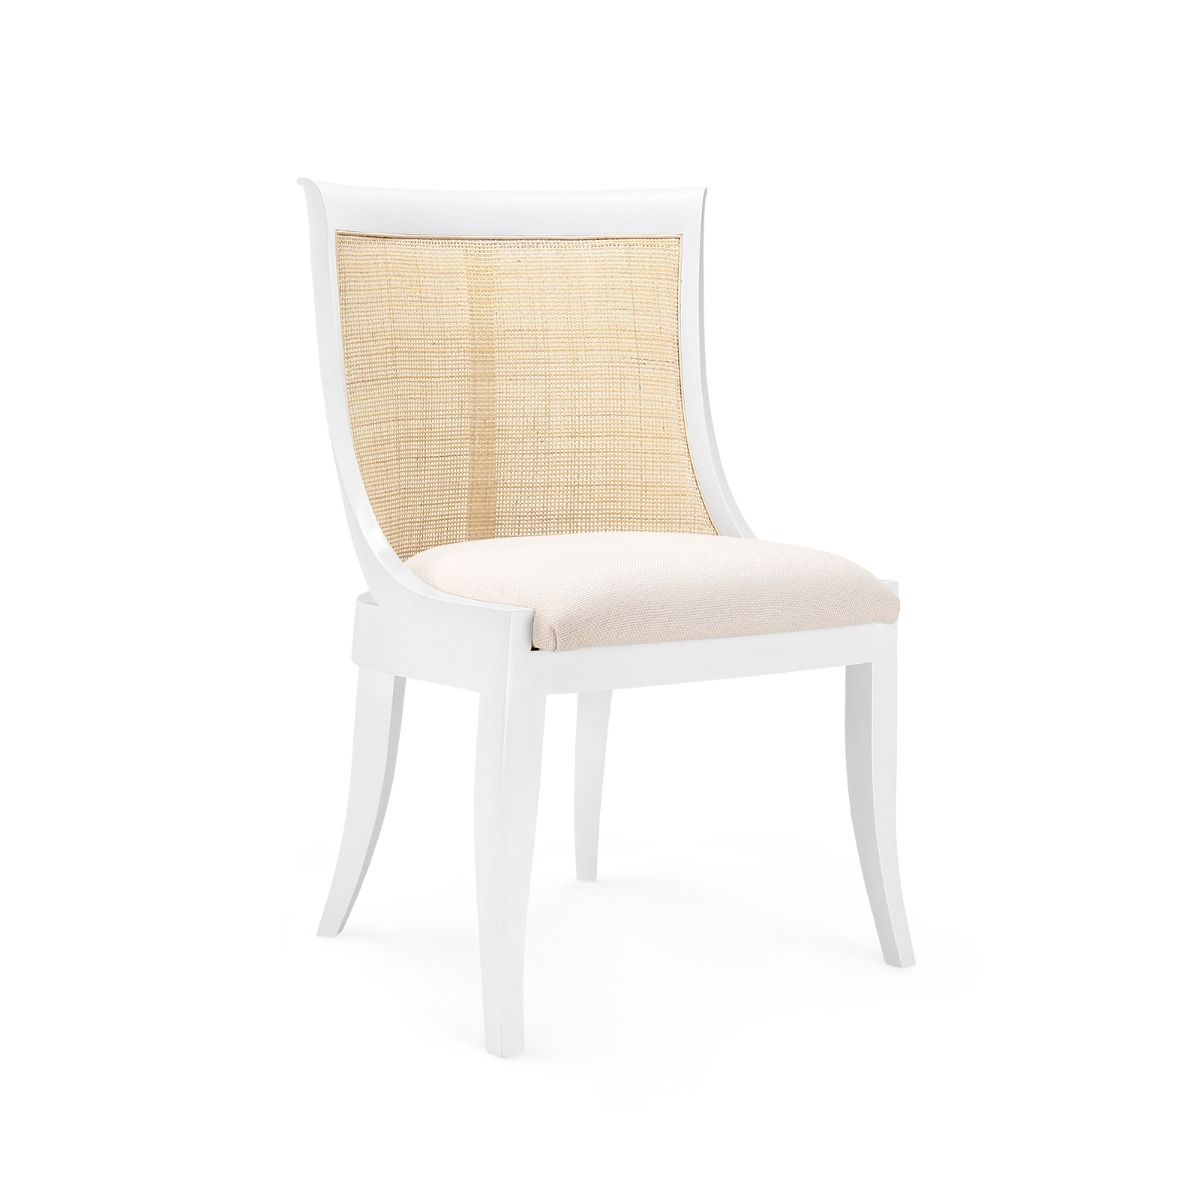 Bungalow 5 - MONACO ARMCHAIR in WHITE